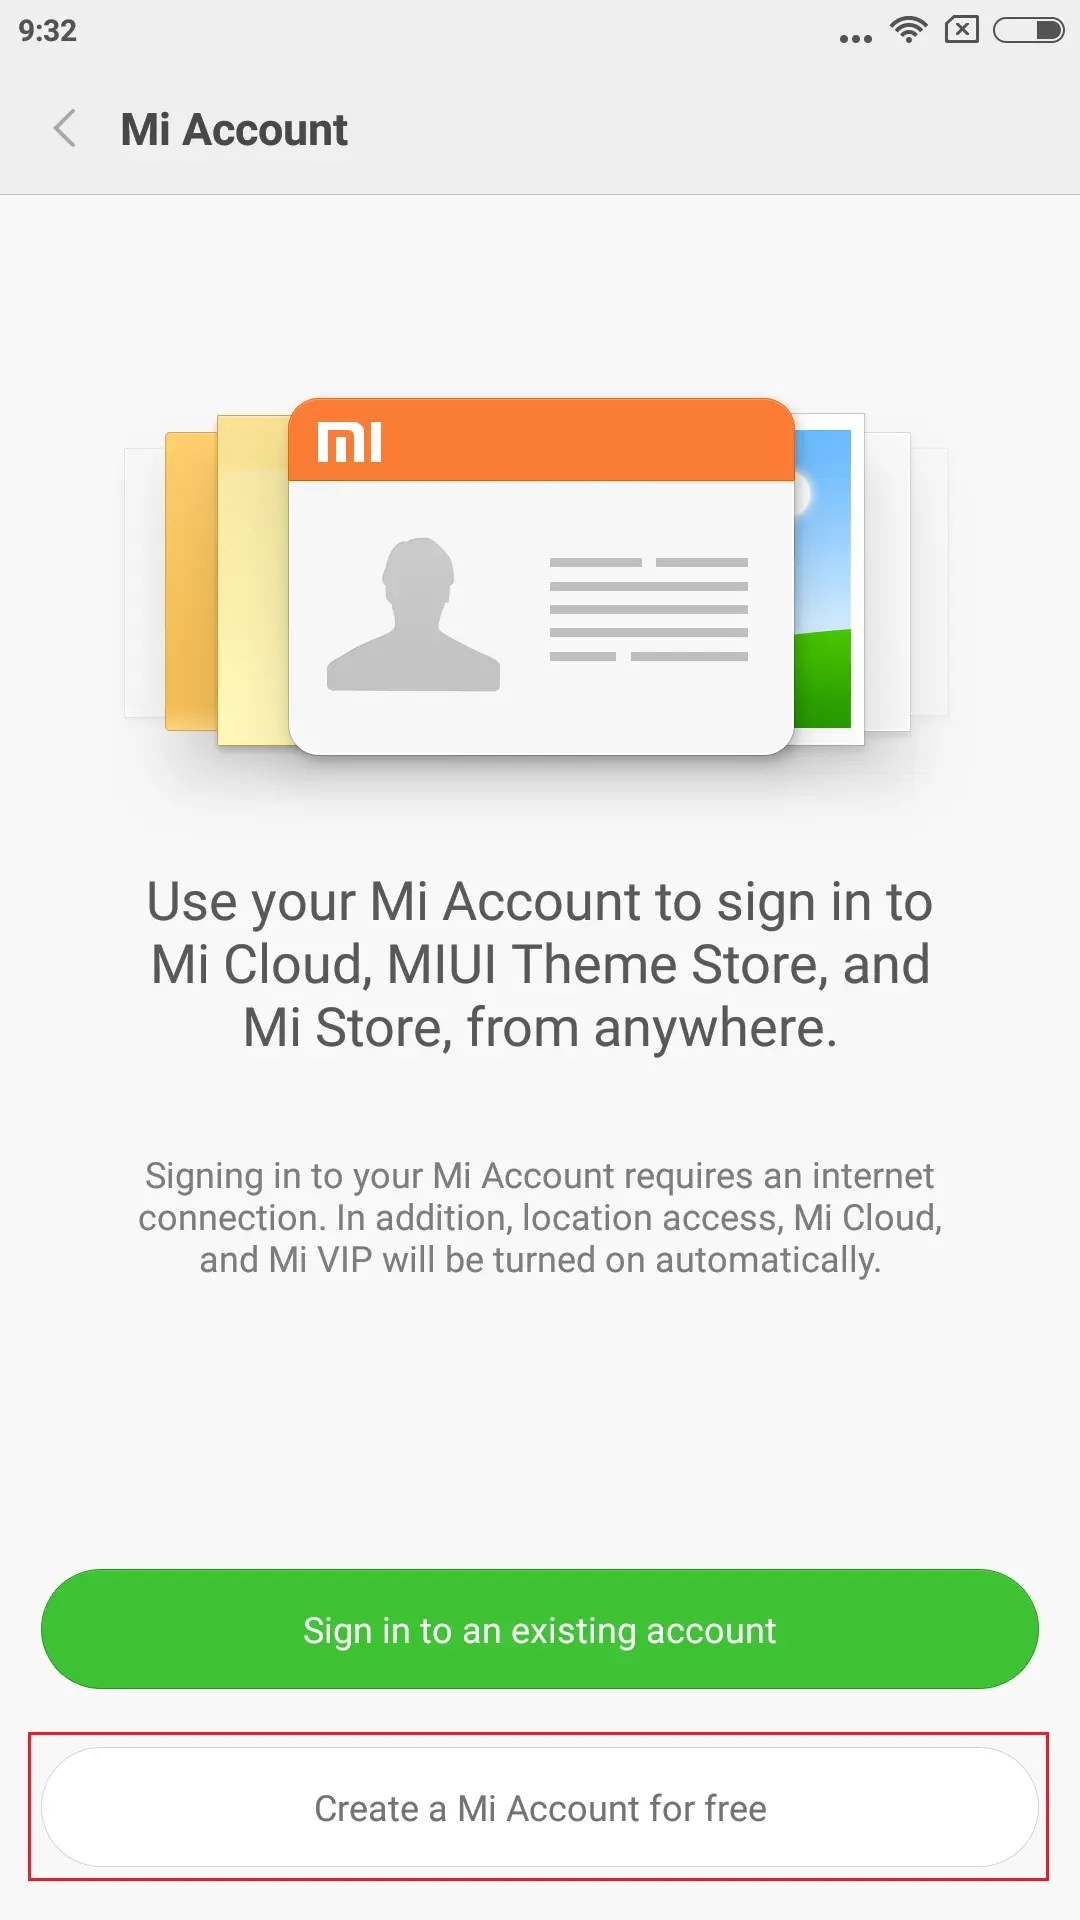 Create a Mi Account for freeを選択